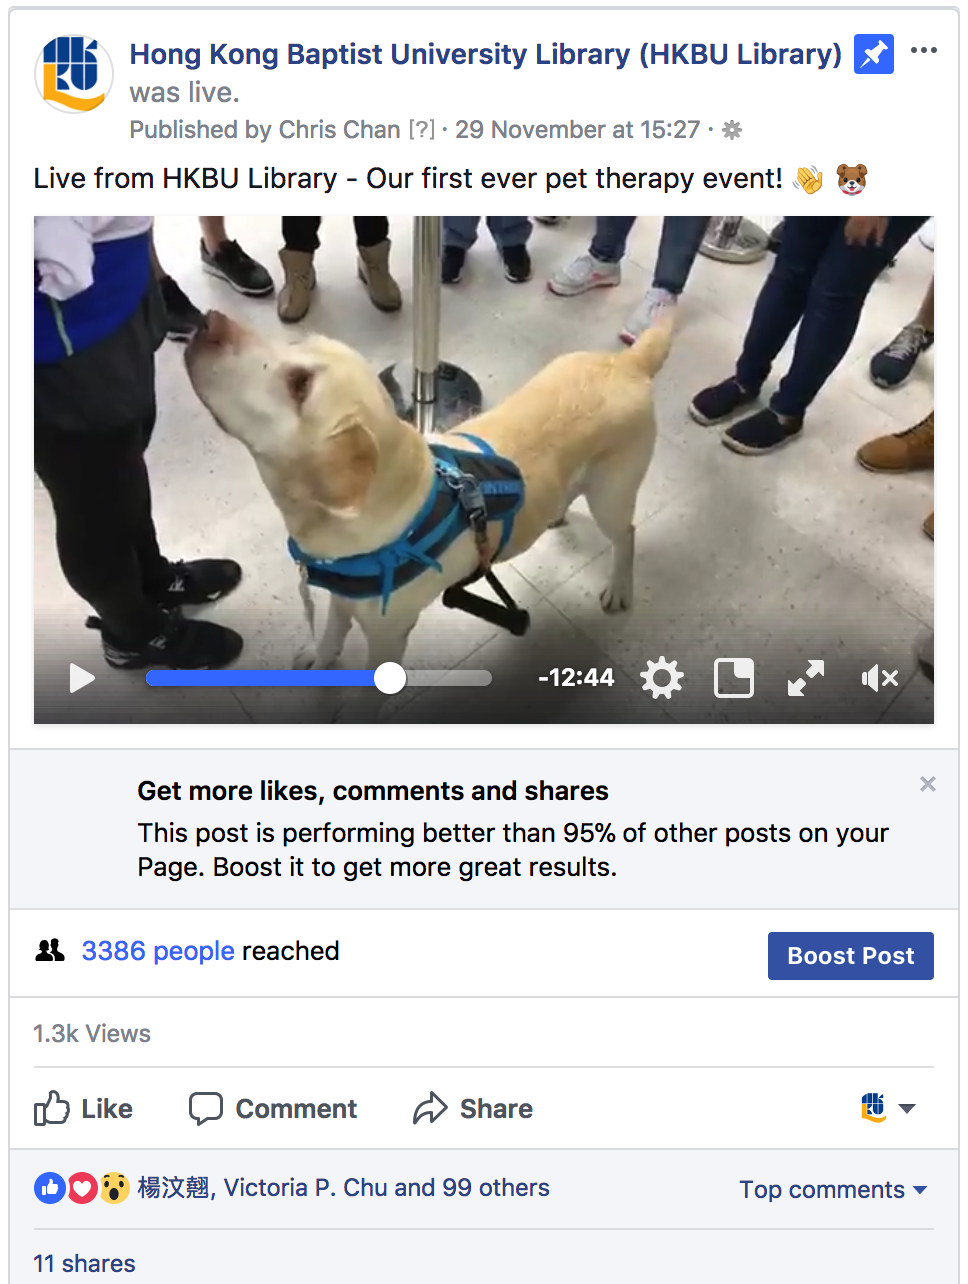 Social media content relating to the HKBU Library Dr. Pet event was extremely popular